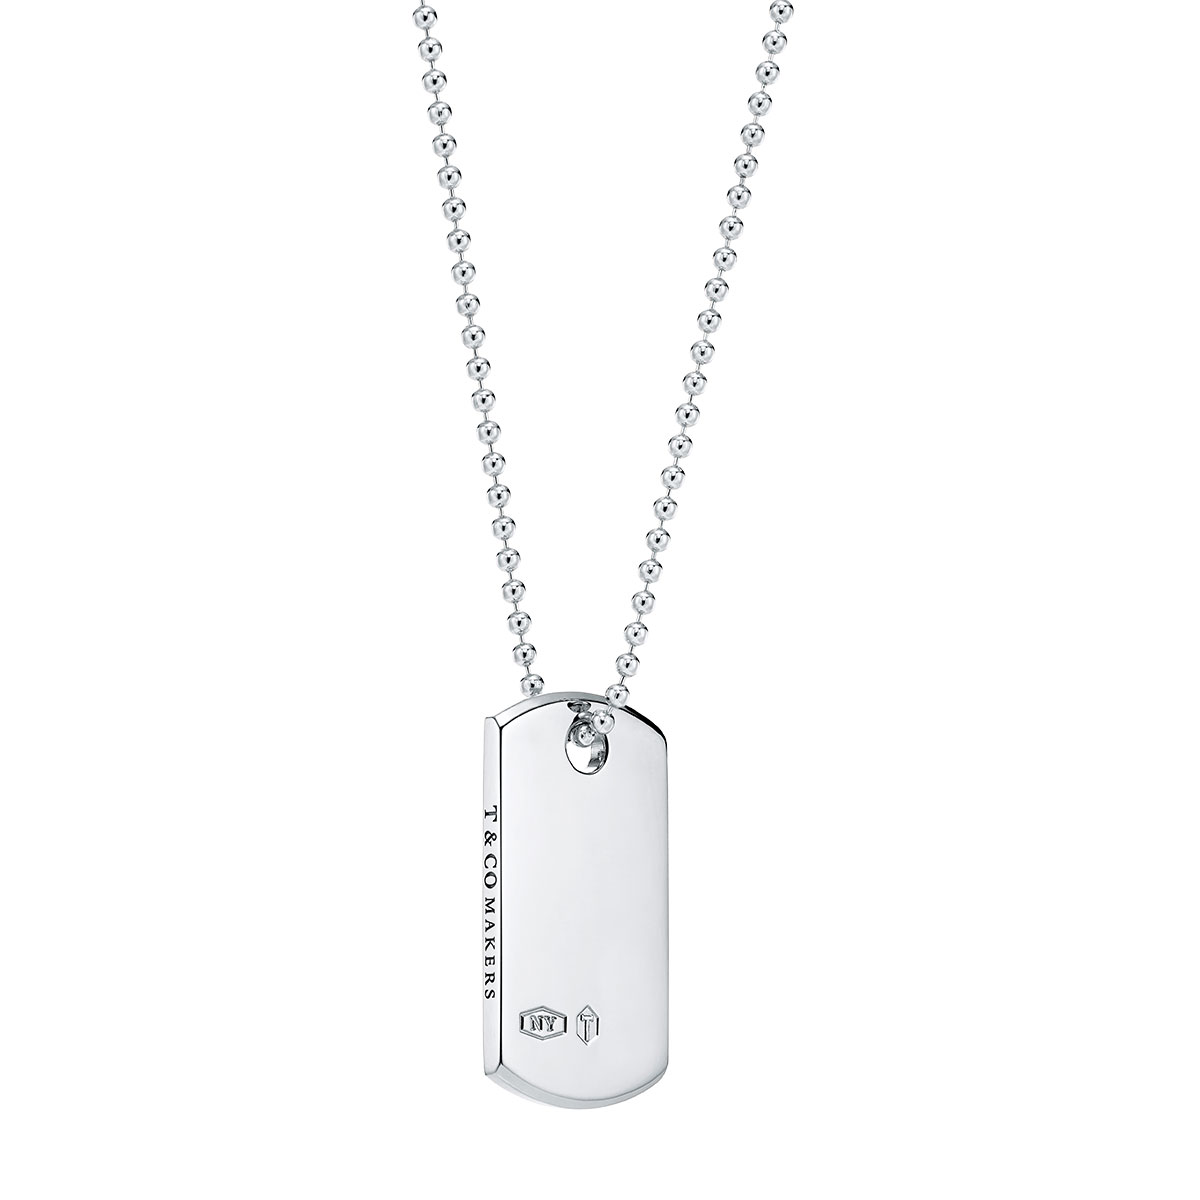 Tiffany 1837 I.D. Tag Pendant in Sterling Silver